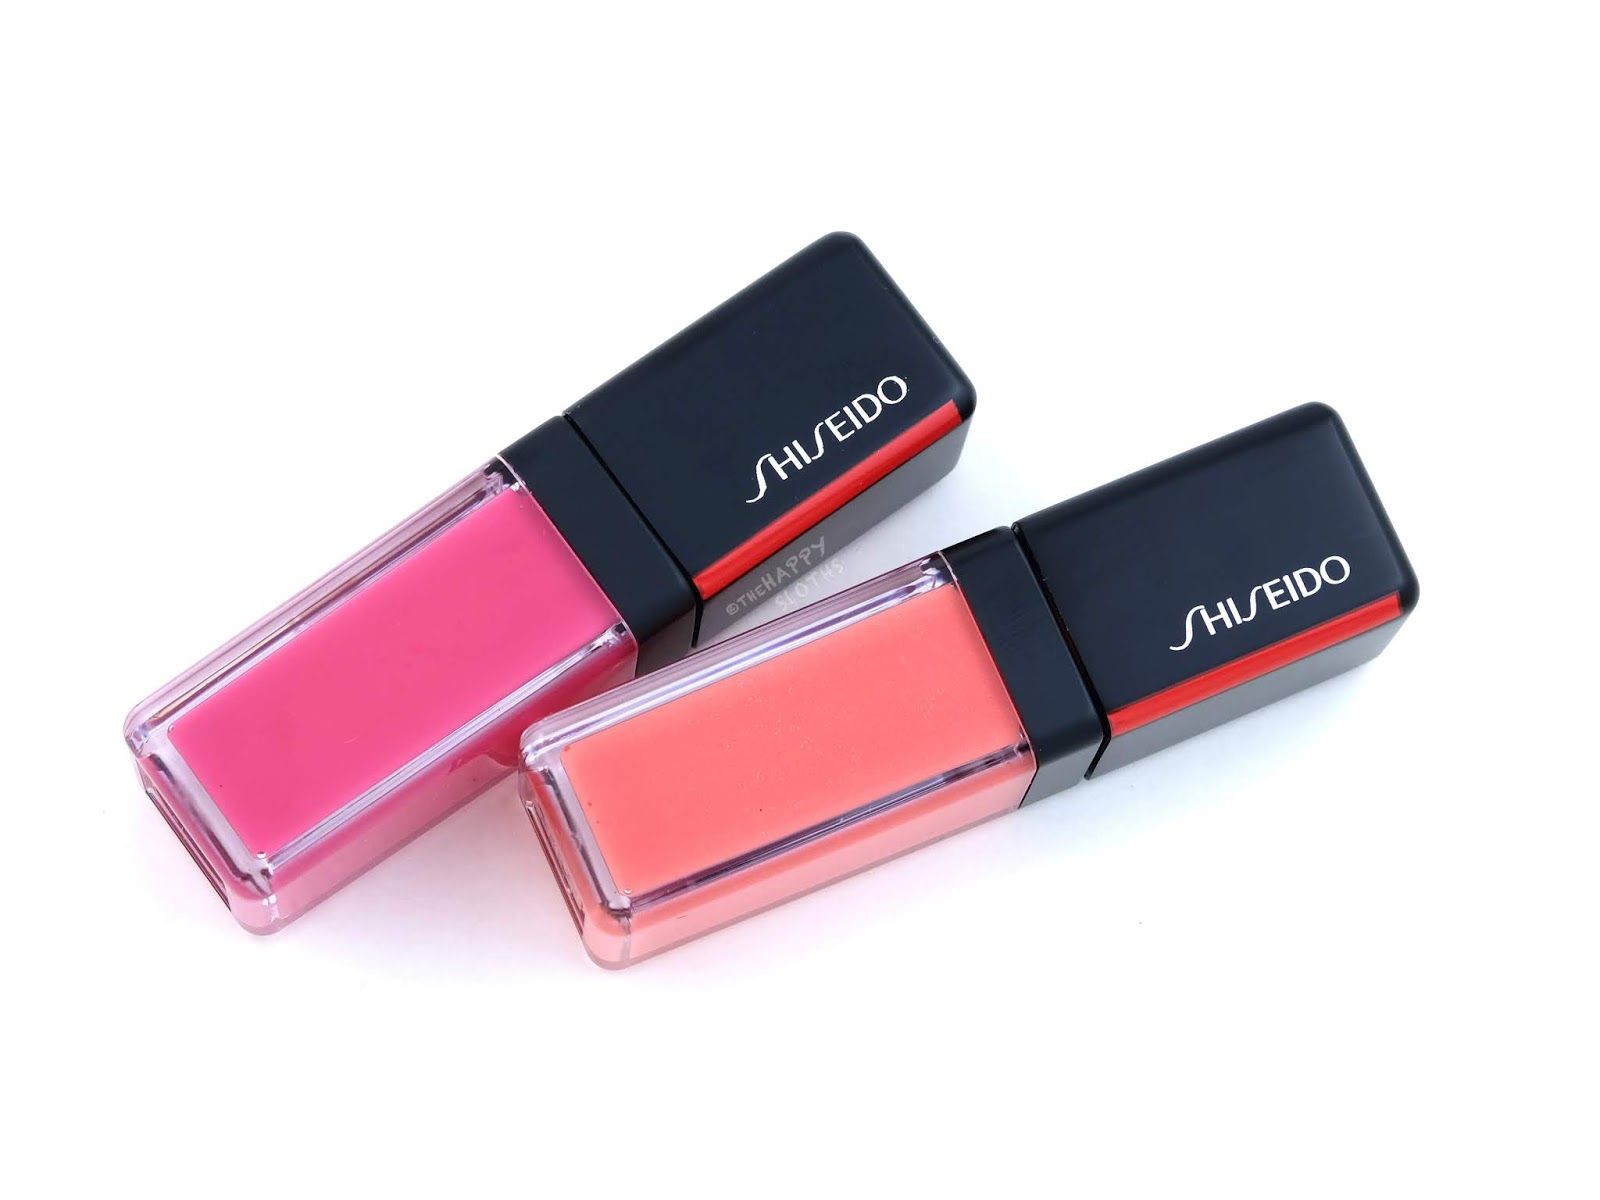 Shiseido | LacquerInk LipShine: Review and Swatches